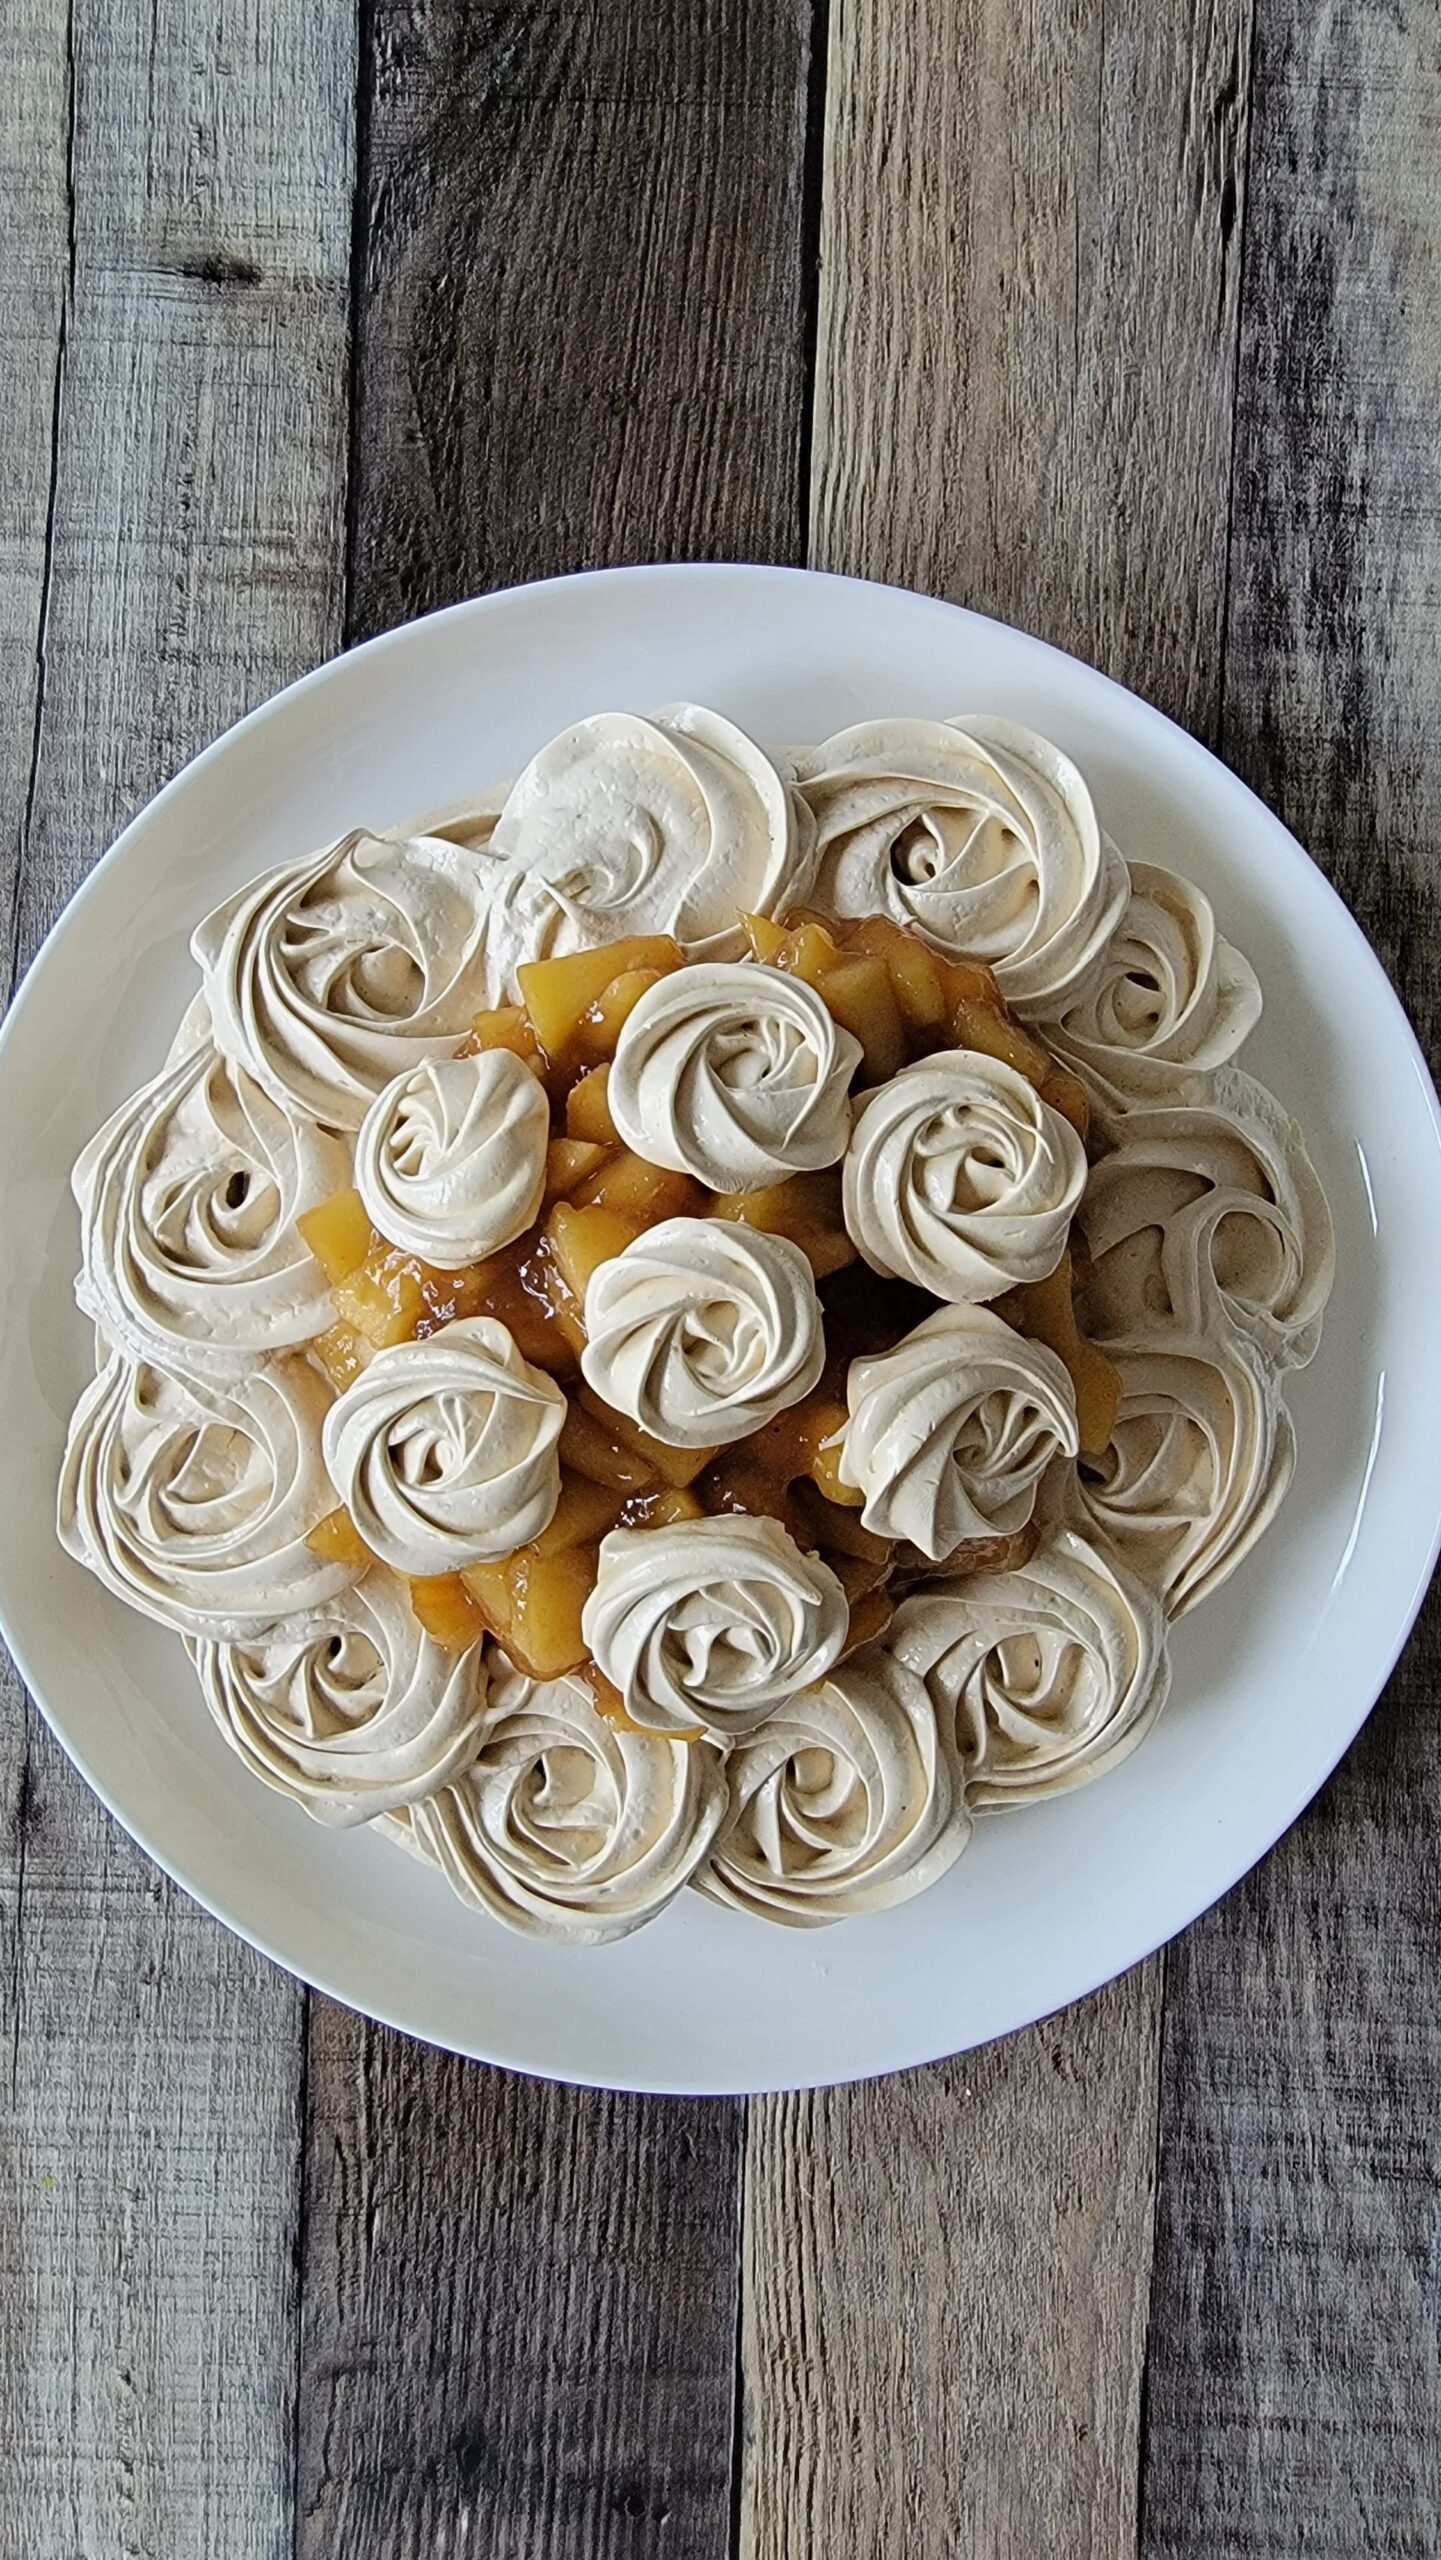 Brown Sugar Meringue with Apple Filling and Rosettes on top.